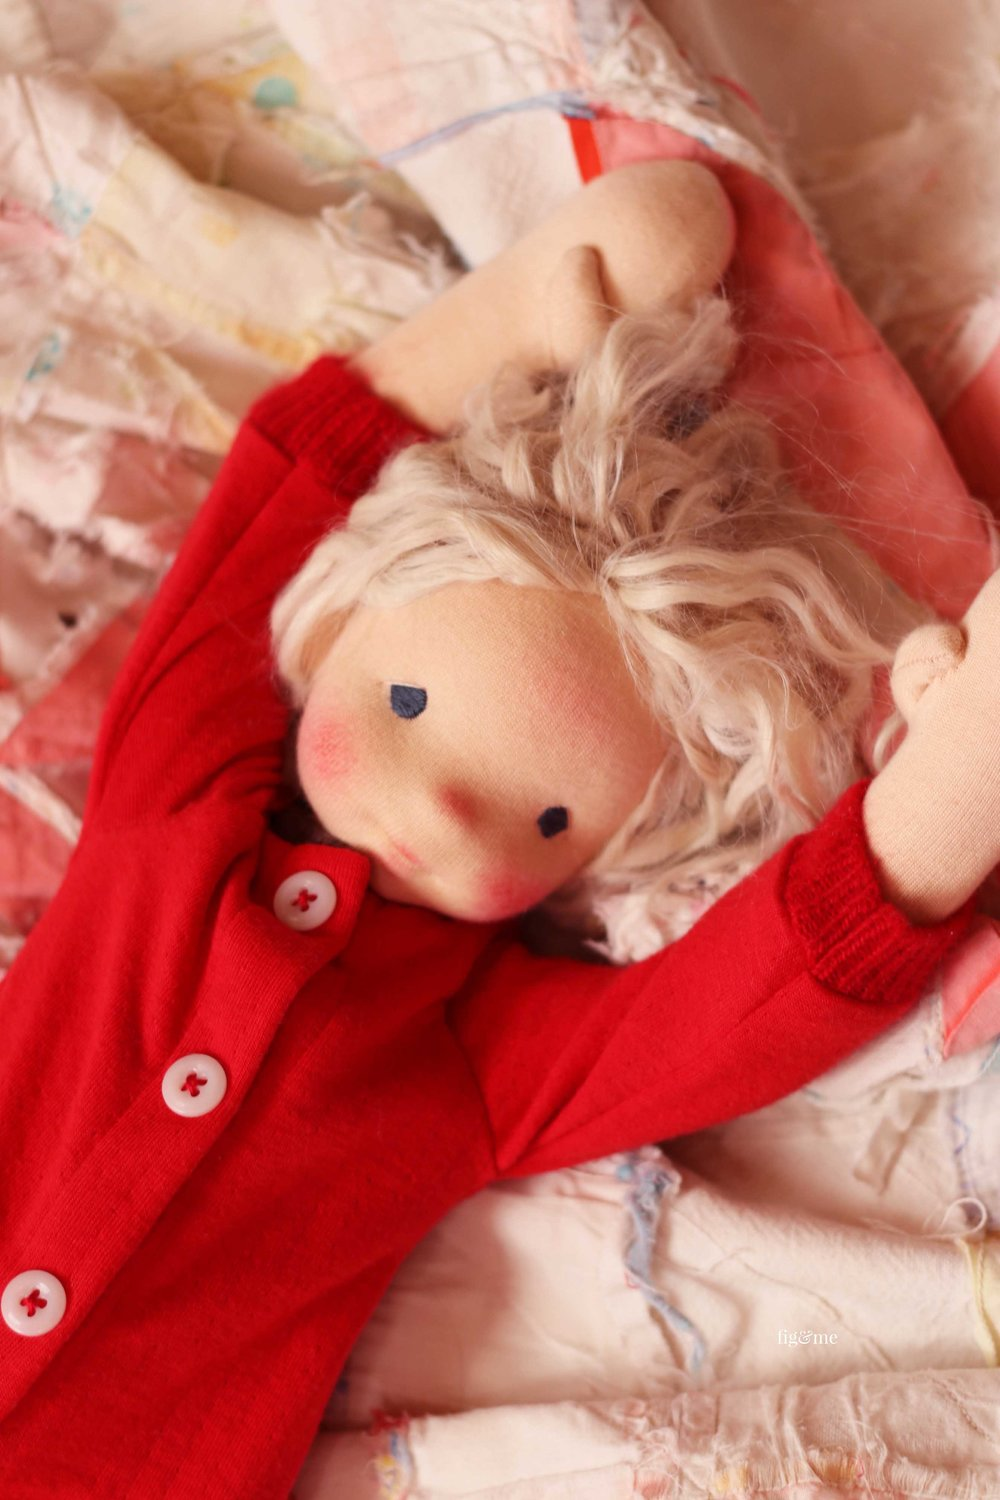 Runa, doing her morning stretches. Natural fiber art doll by Fig and Me.